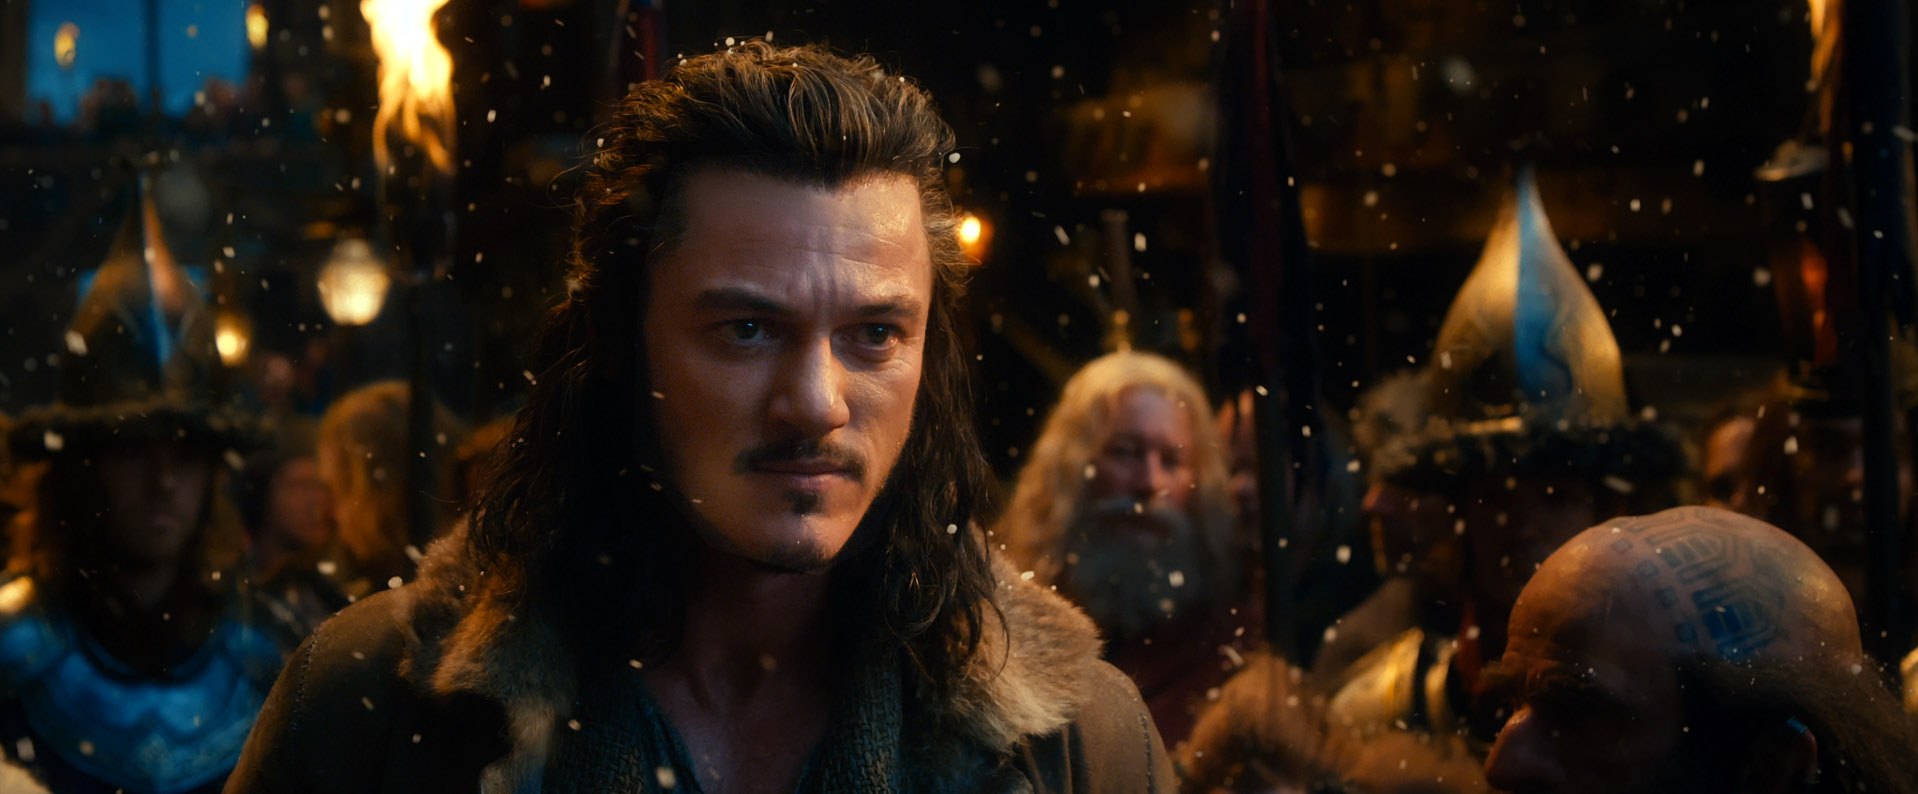 hobbit desolation smaug bard bowman The Hobbit: The Desolation Of Smaug Gallery